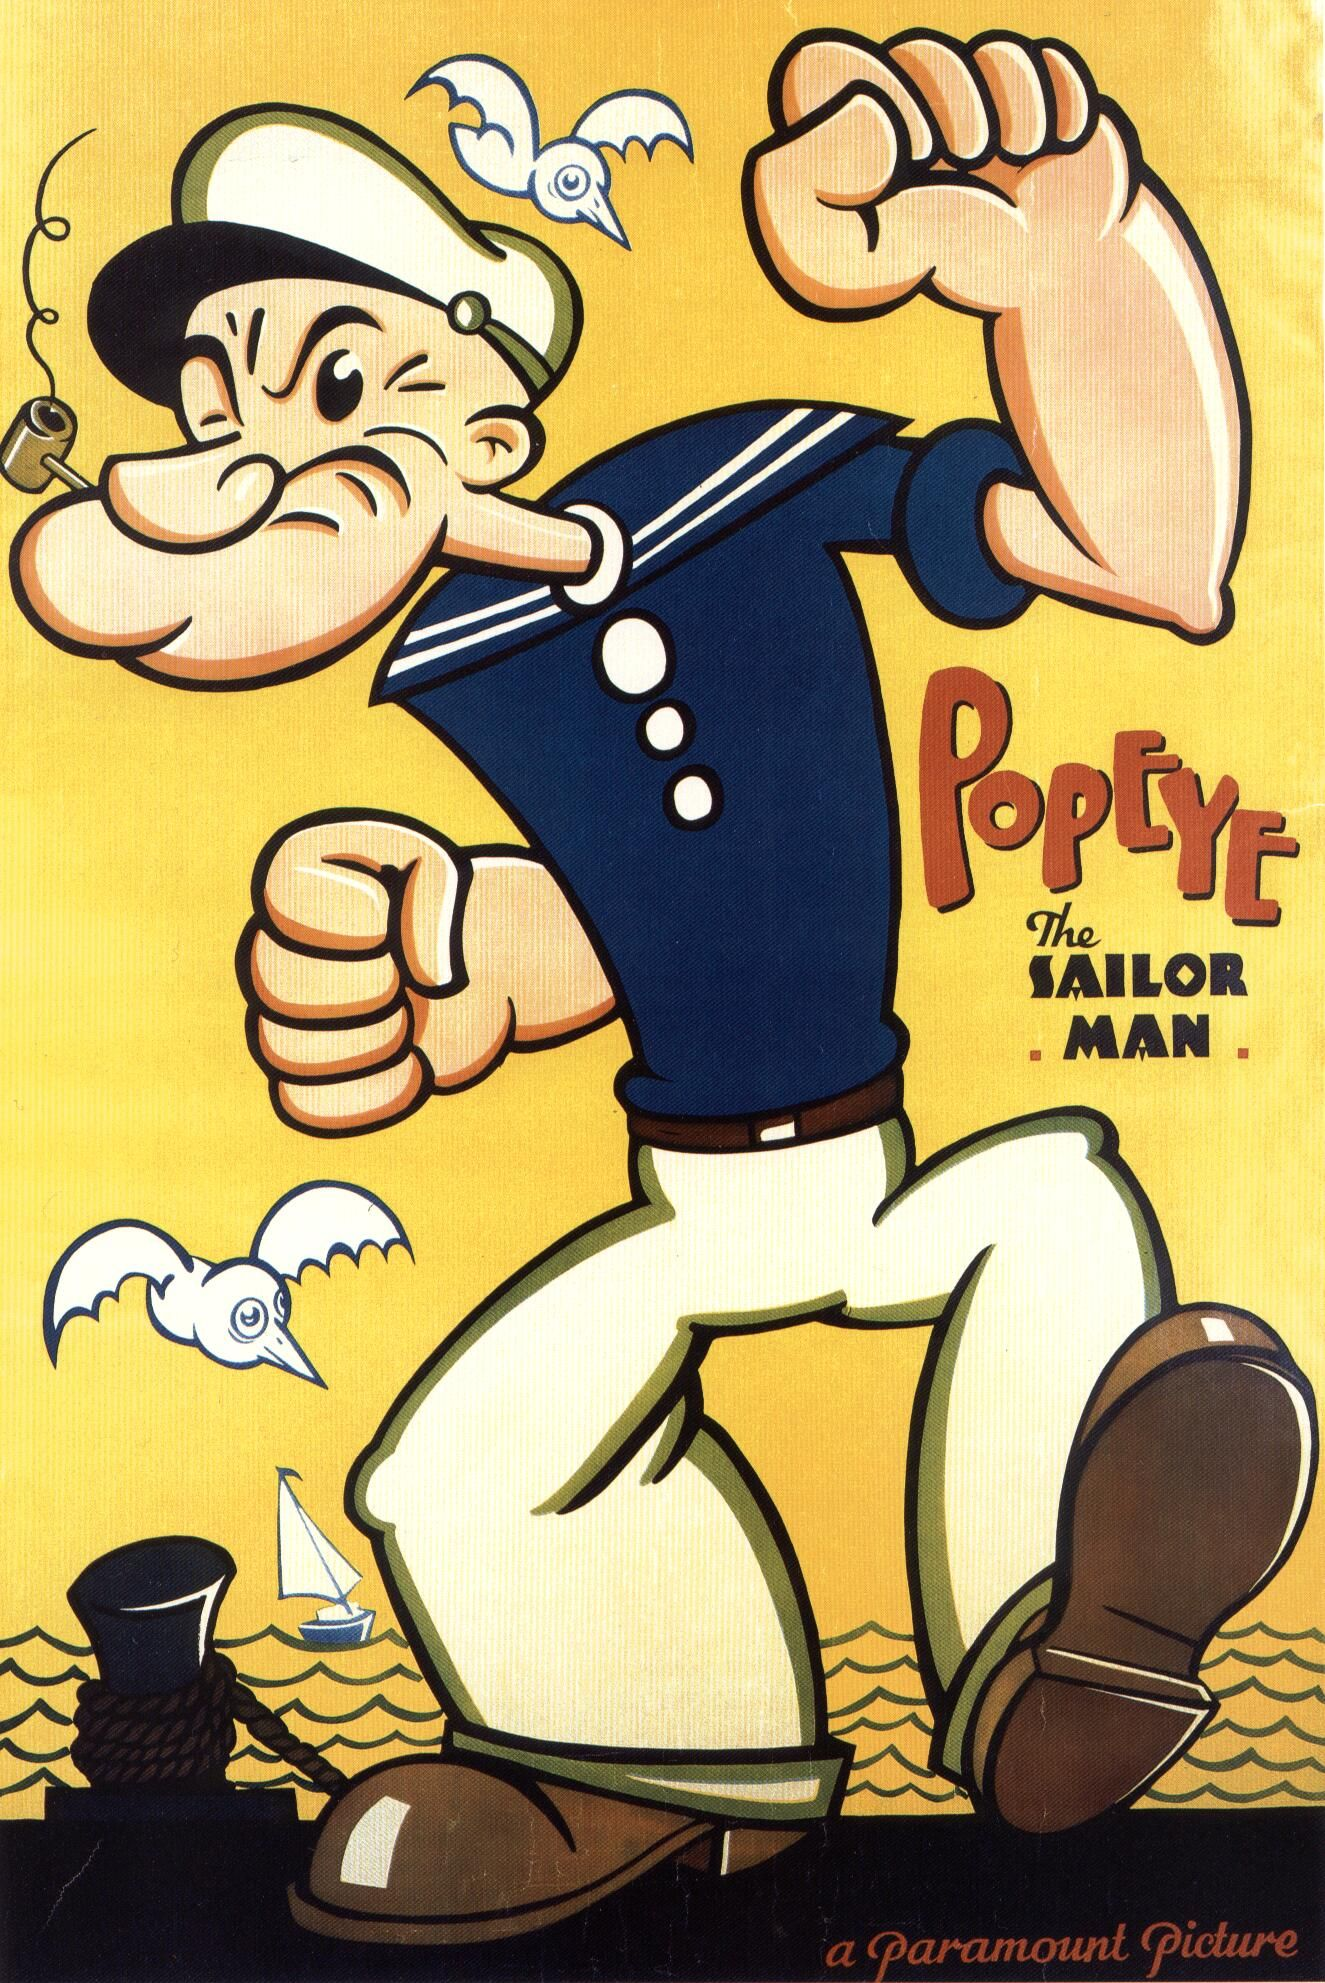 popeye the sailor man hd image wallpaper for android cartoons wallpapers